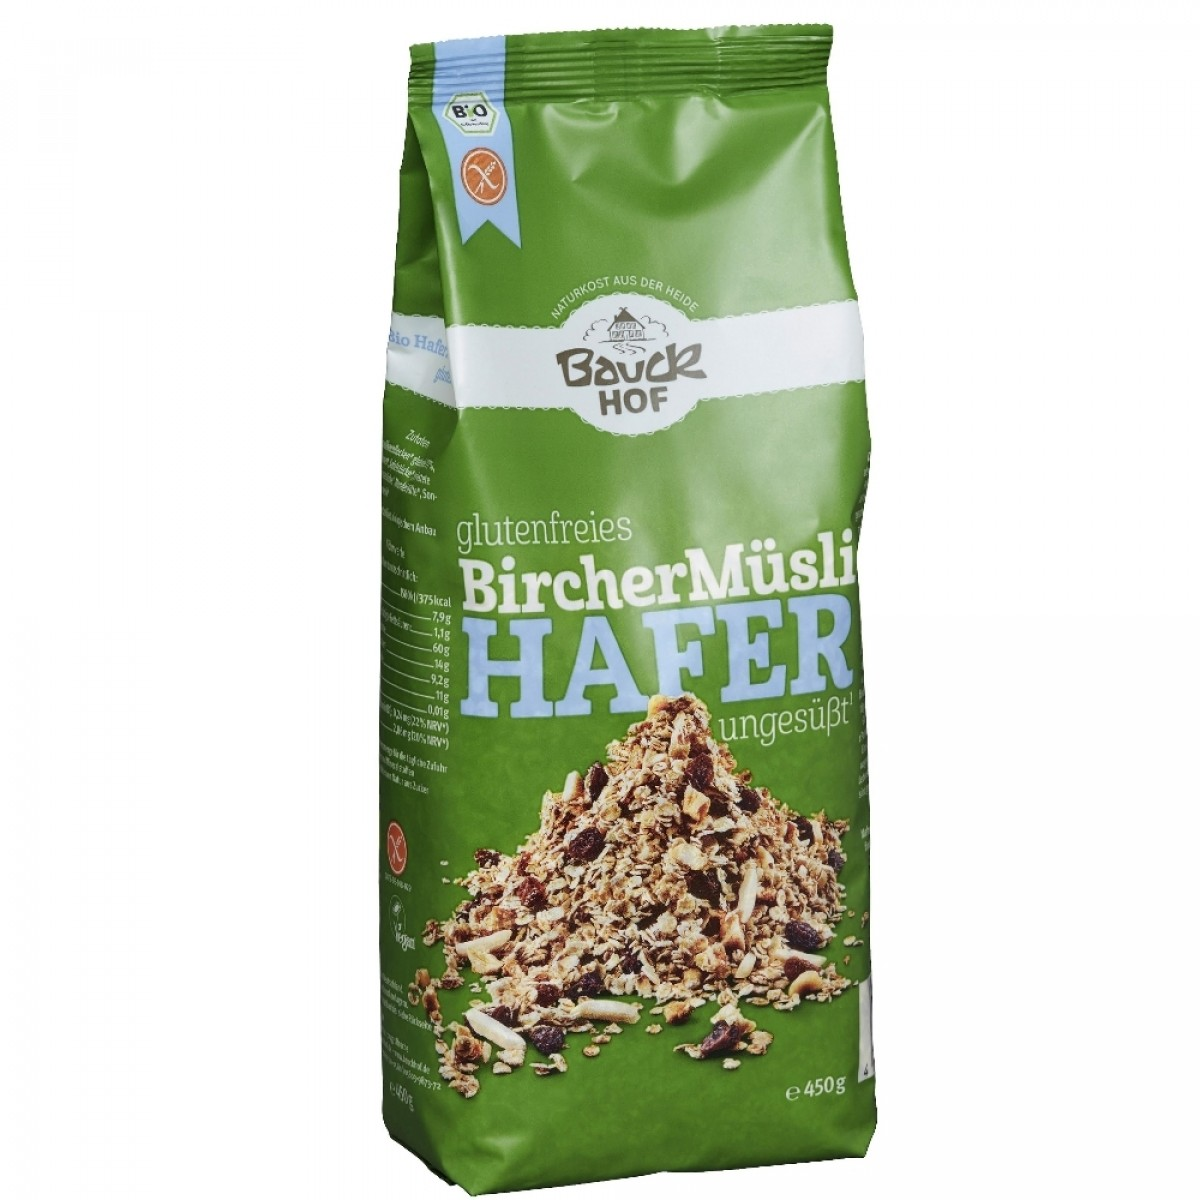 Havermuesli Bircher